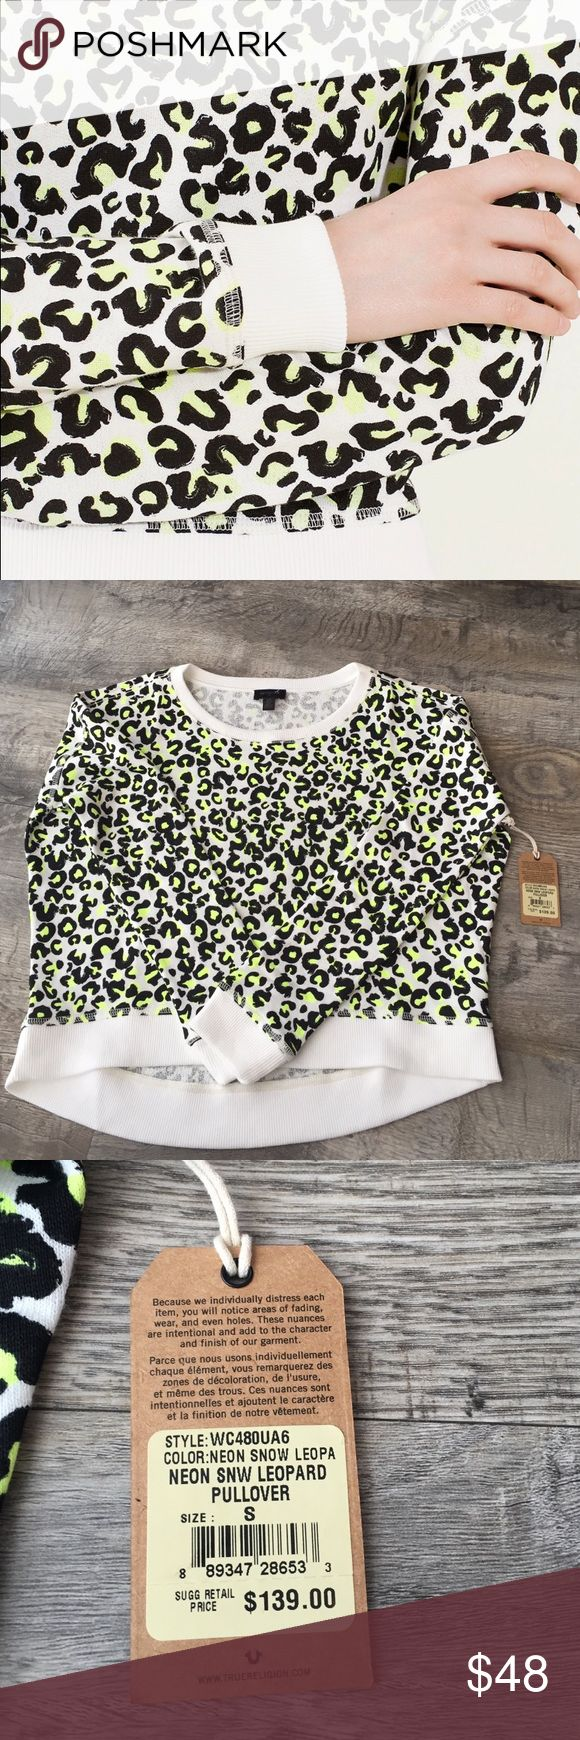 True religion leopard pullover sweatshirt new top True religion leopard pullover sweatshirt new with tags retail 139 neon leopard pattern so cute true religion Tops